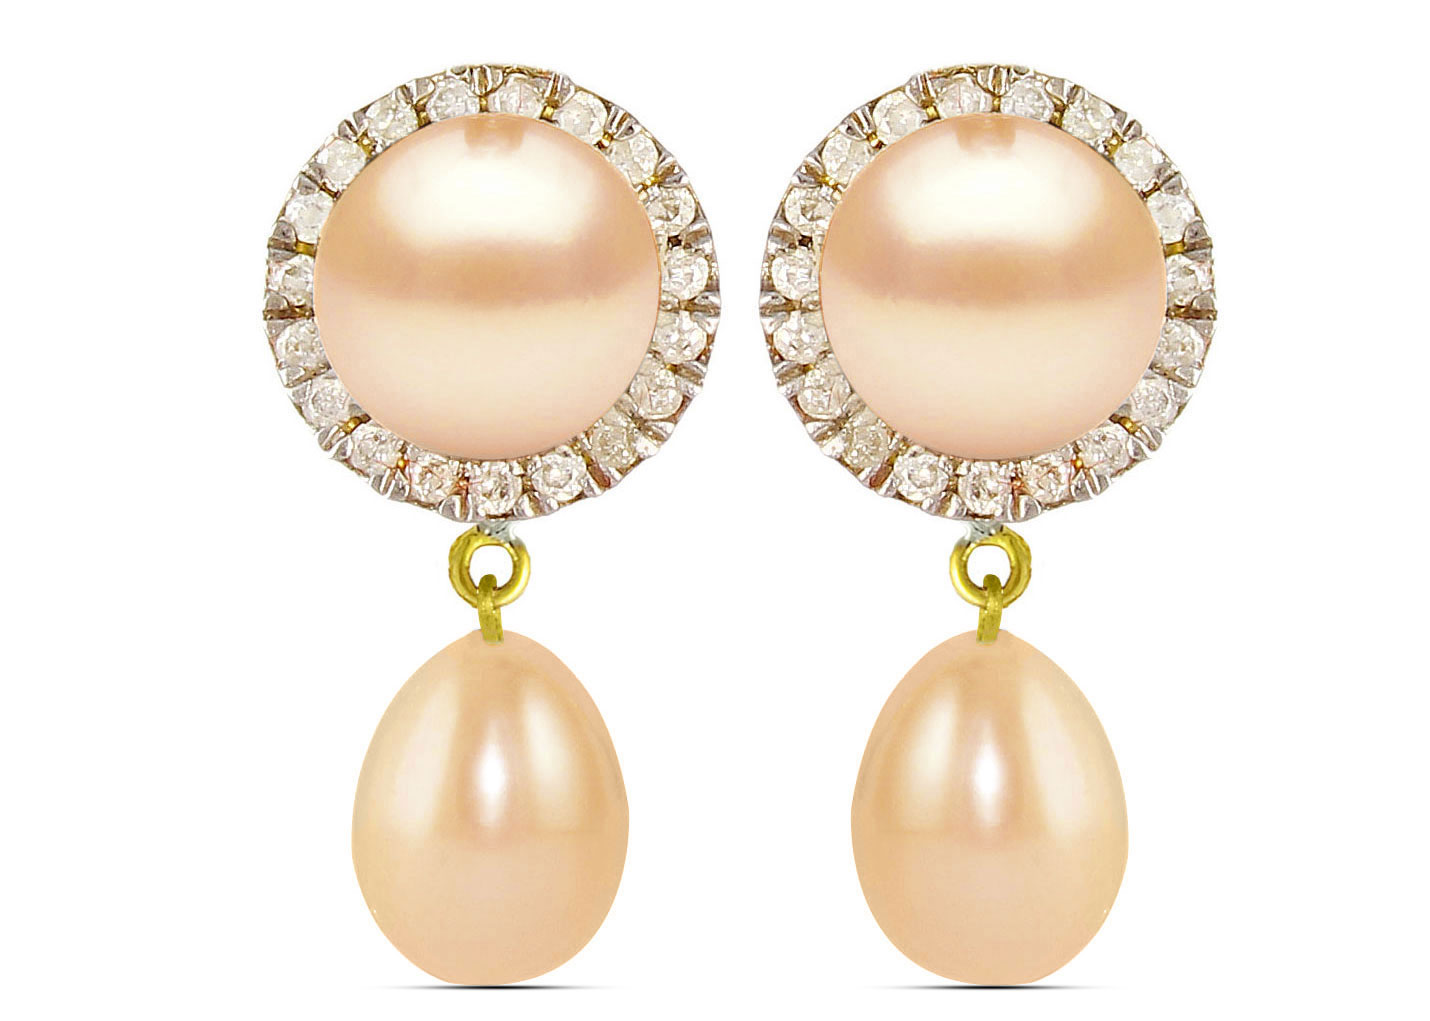 Vera Perla 18K Solid Gold 0.20ct Genuine Diamonds and 6-7 mm Pink Pearl Earrings